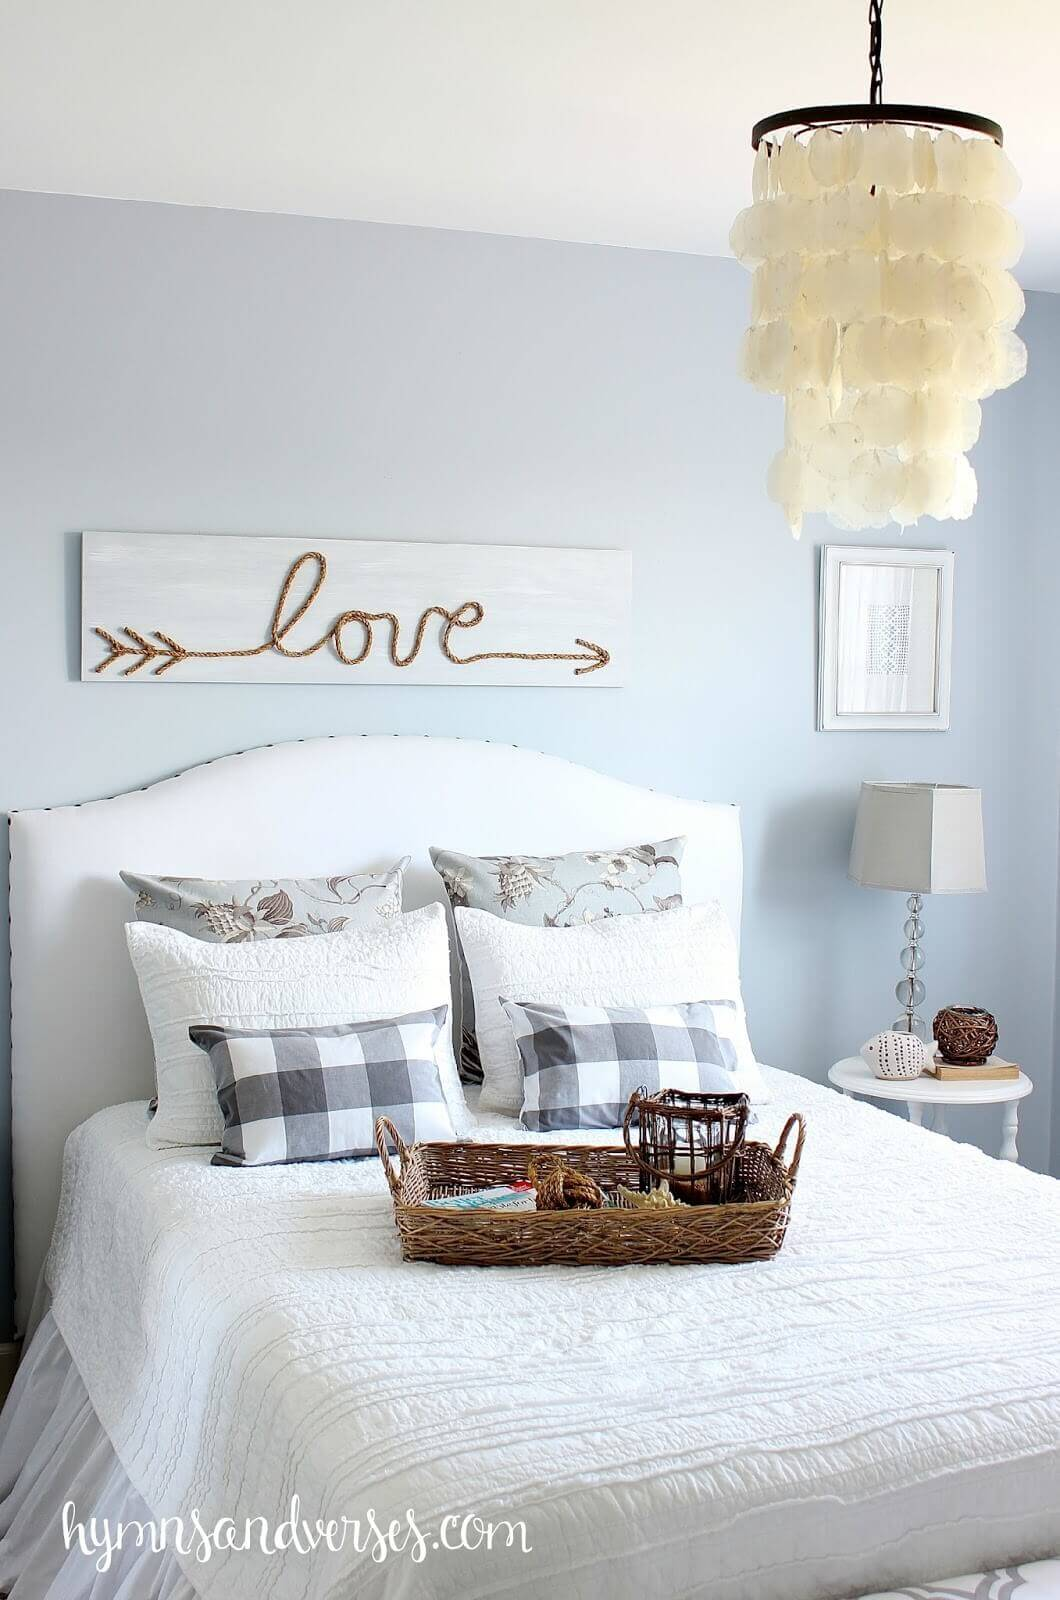 25+ Best Bedroom Wall Decor Ideas and Designs for 2020 on Bedroom Wall Decor  id=42326